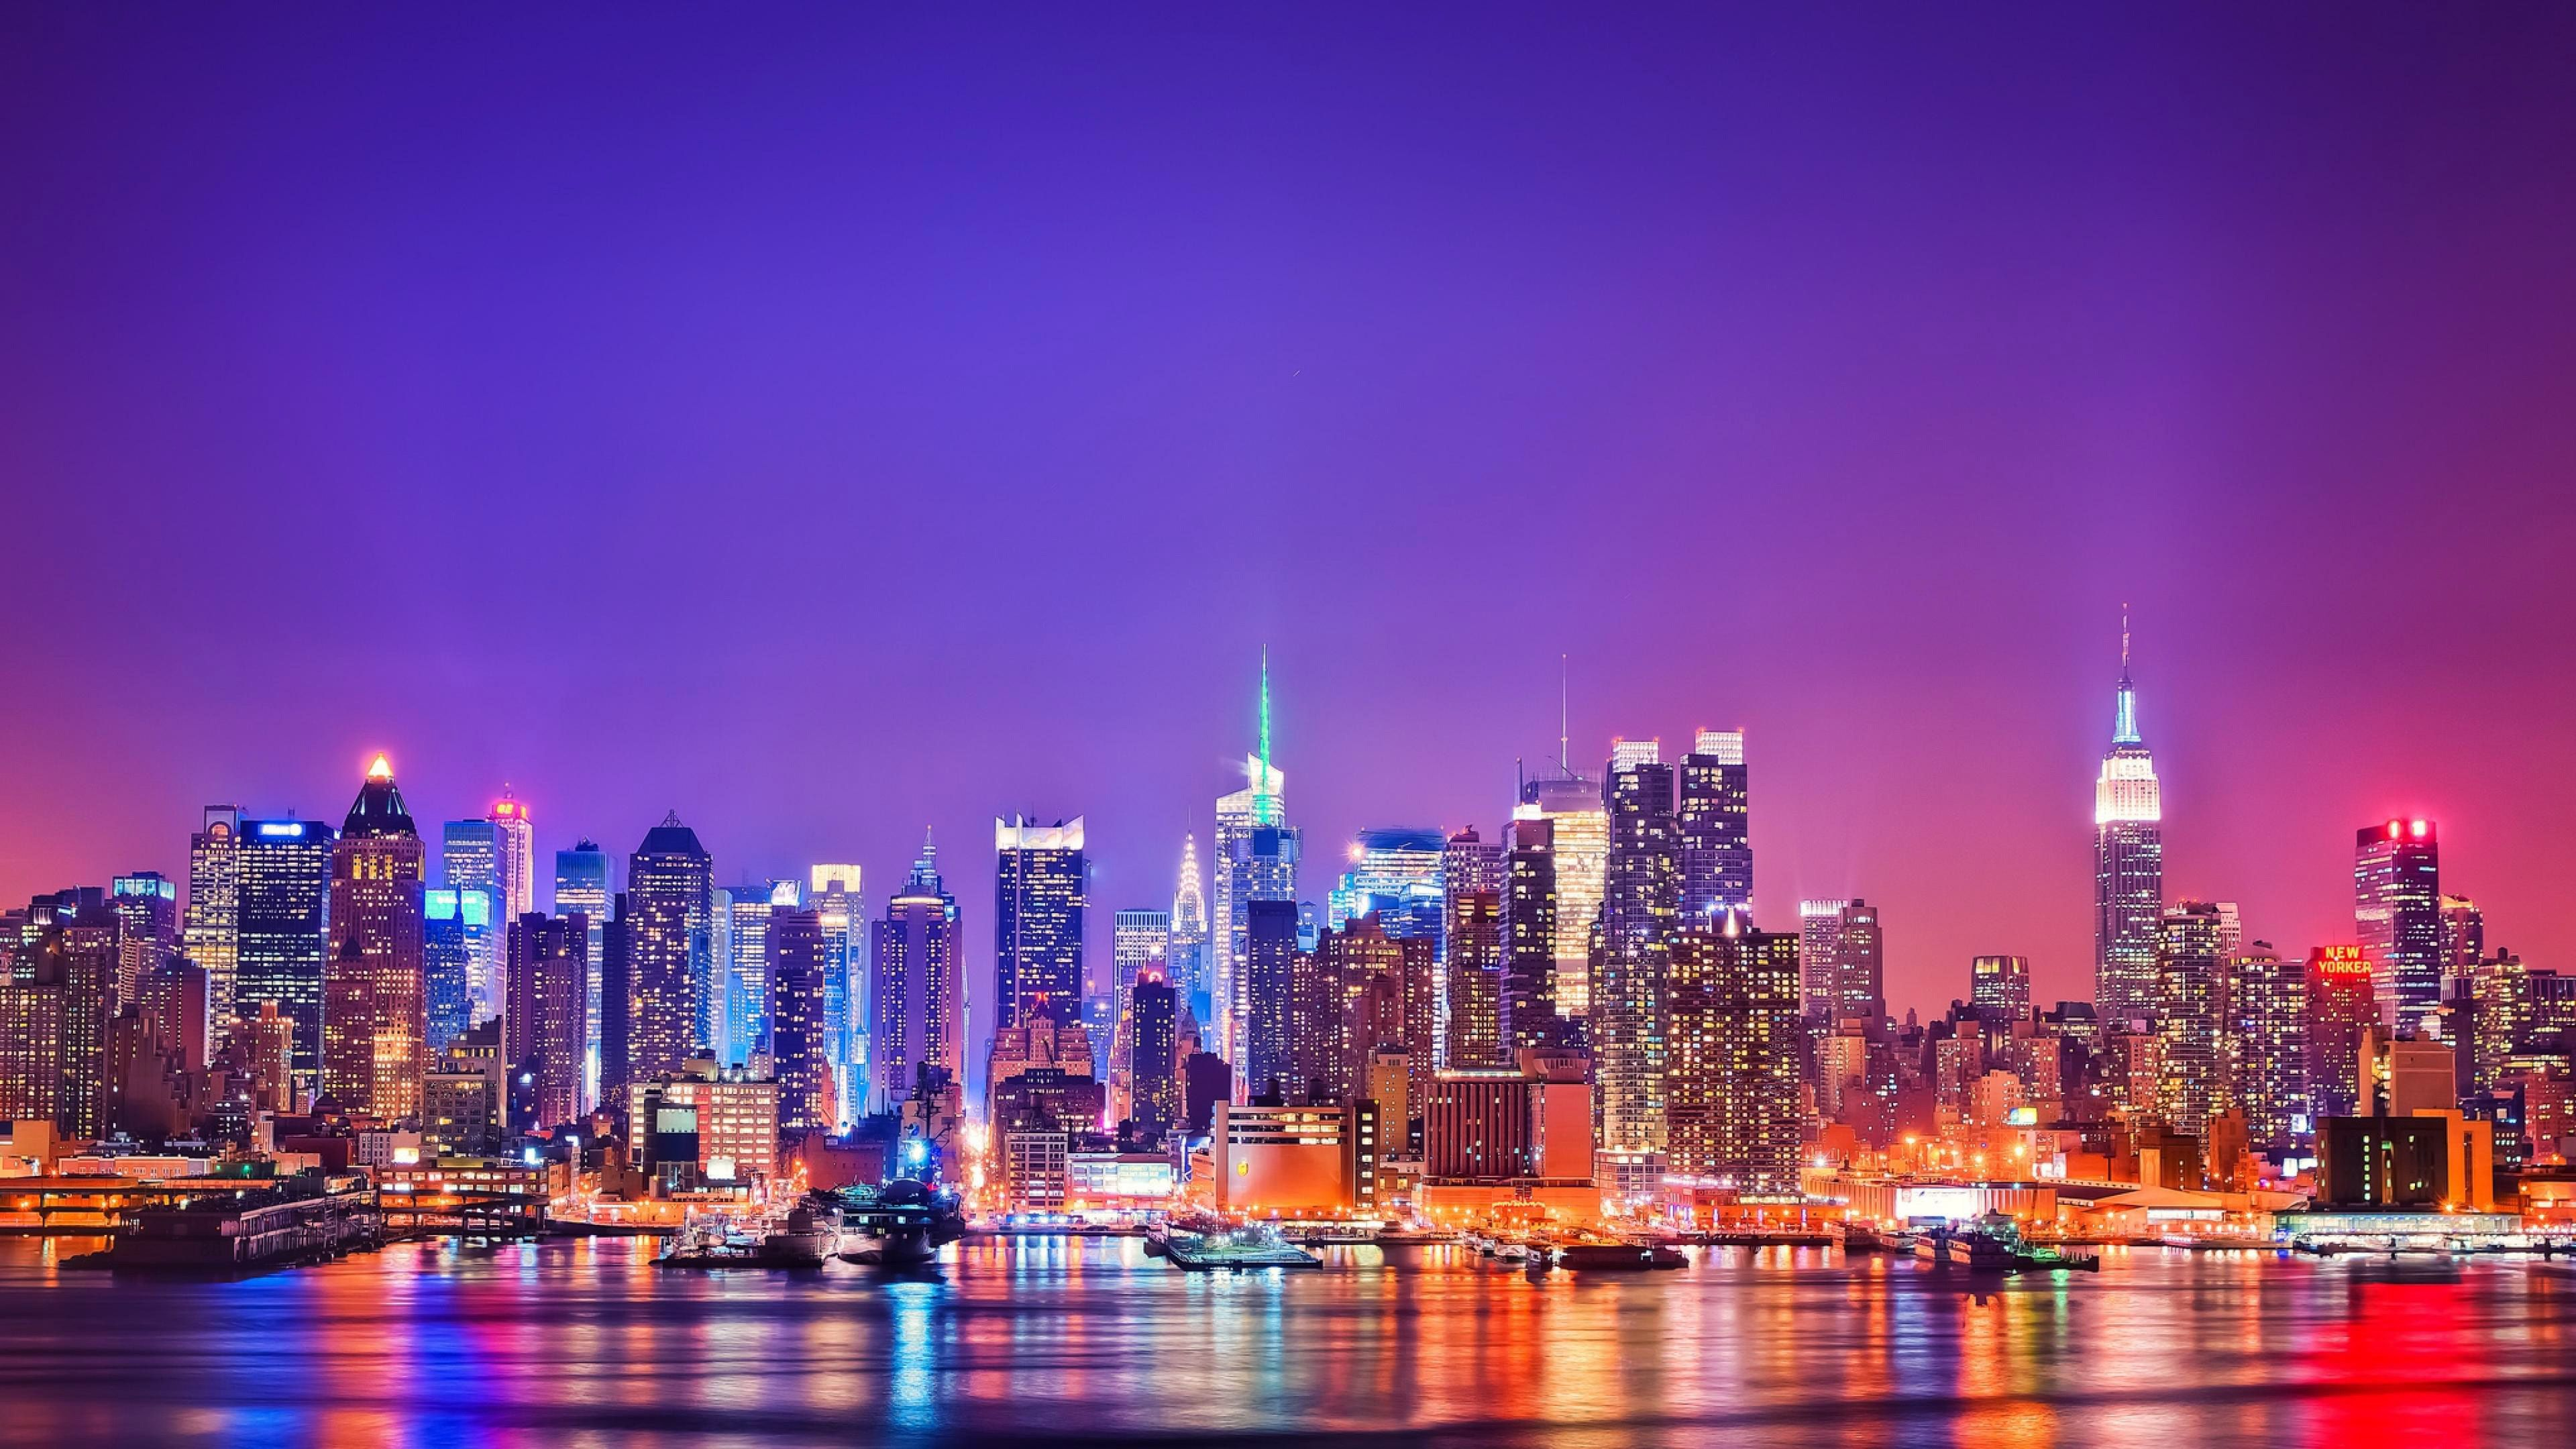 Attachment File Of America Smart City Wallpapers With New York View At Night New York City Background City Wallpaper New York Skyline